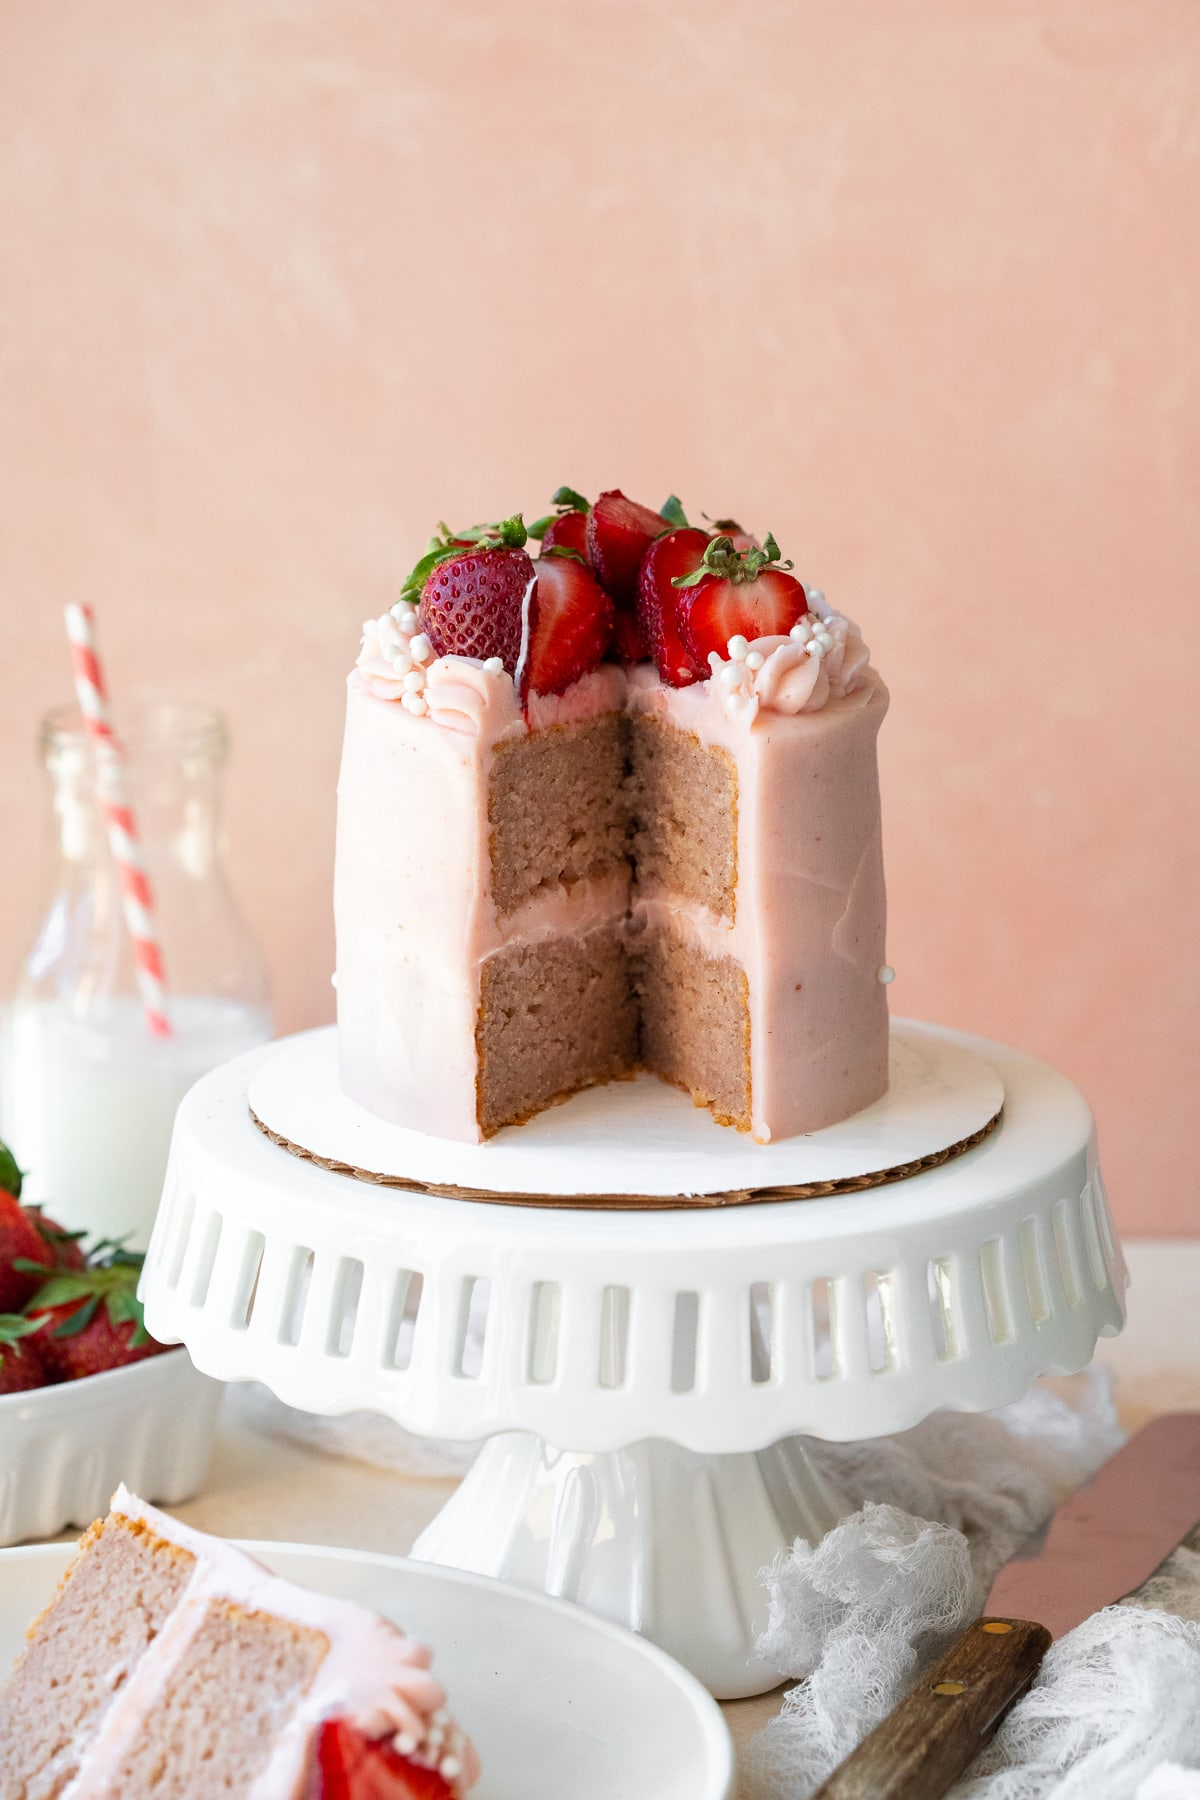 Center cut view of cake on a white stand against a pink backdrop.